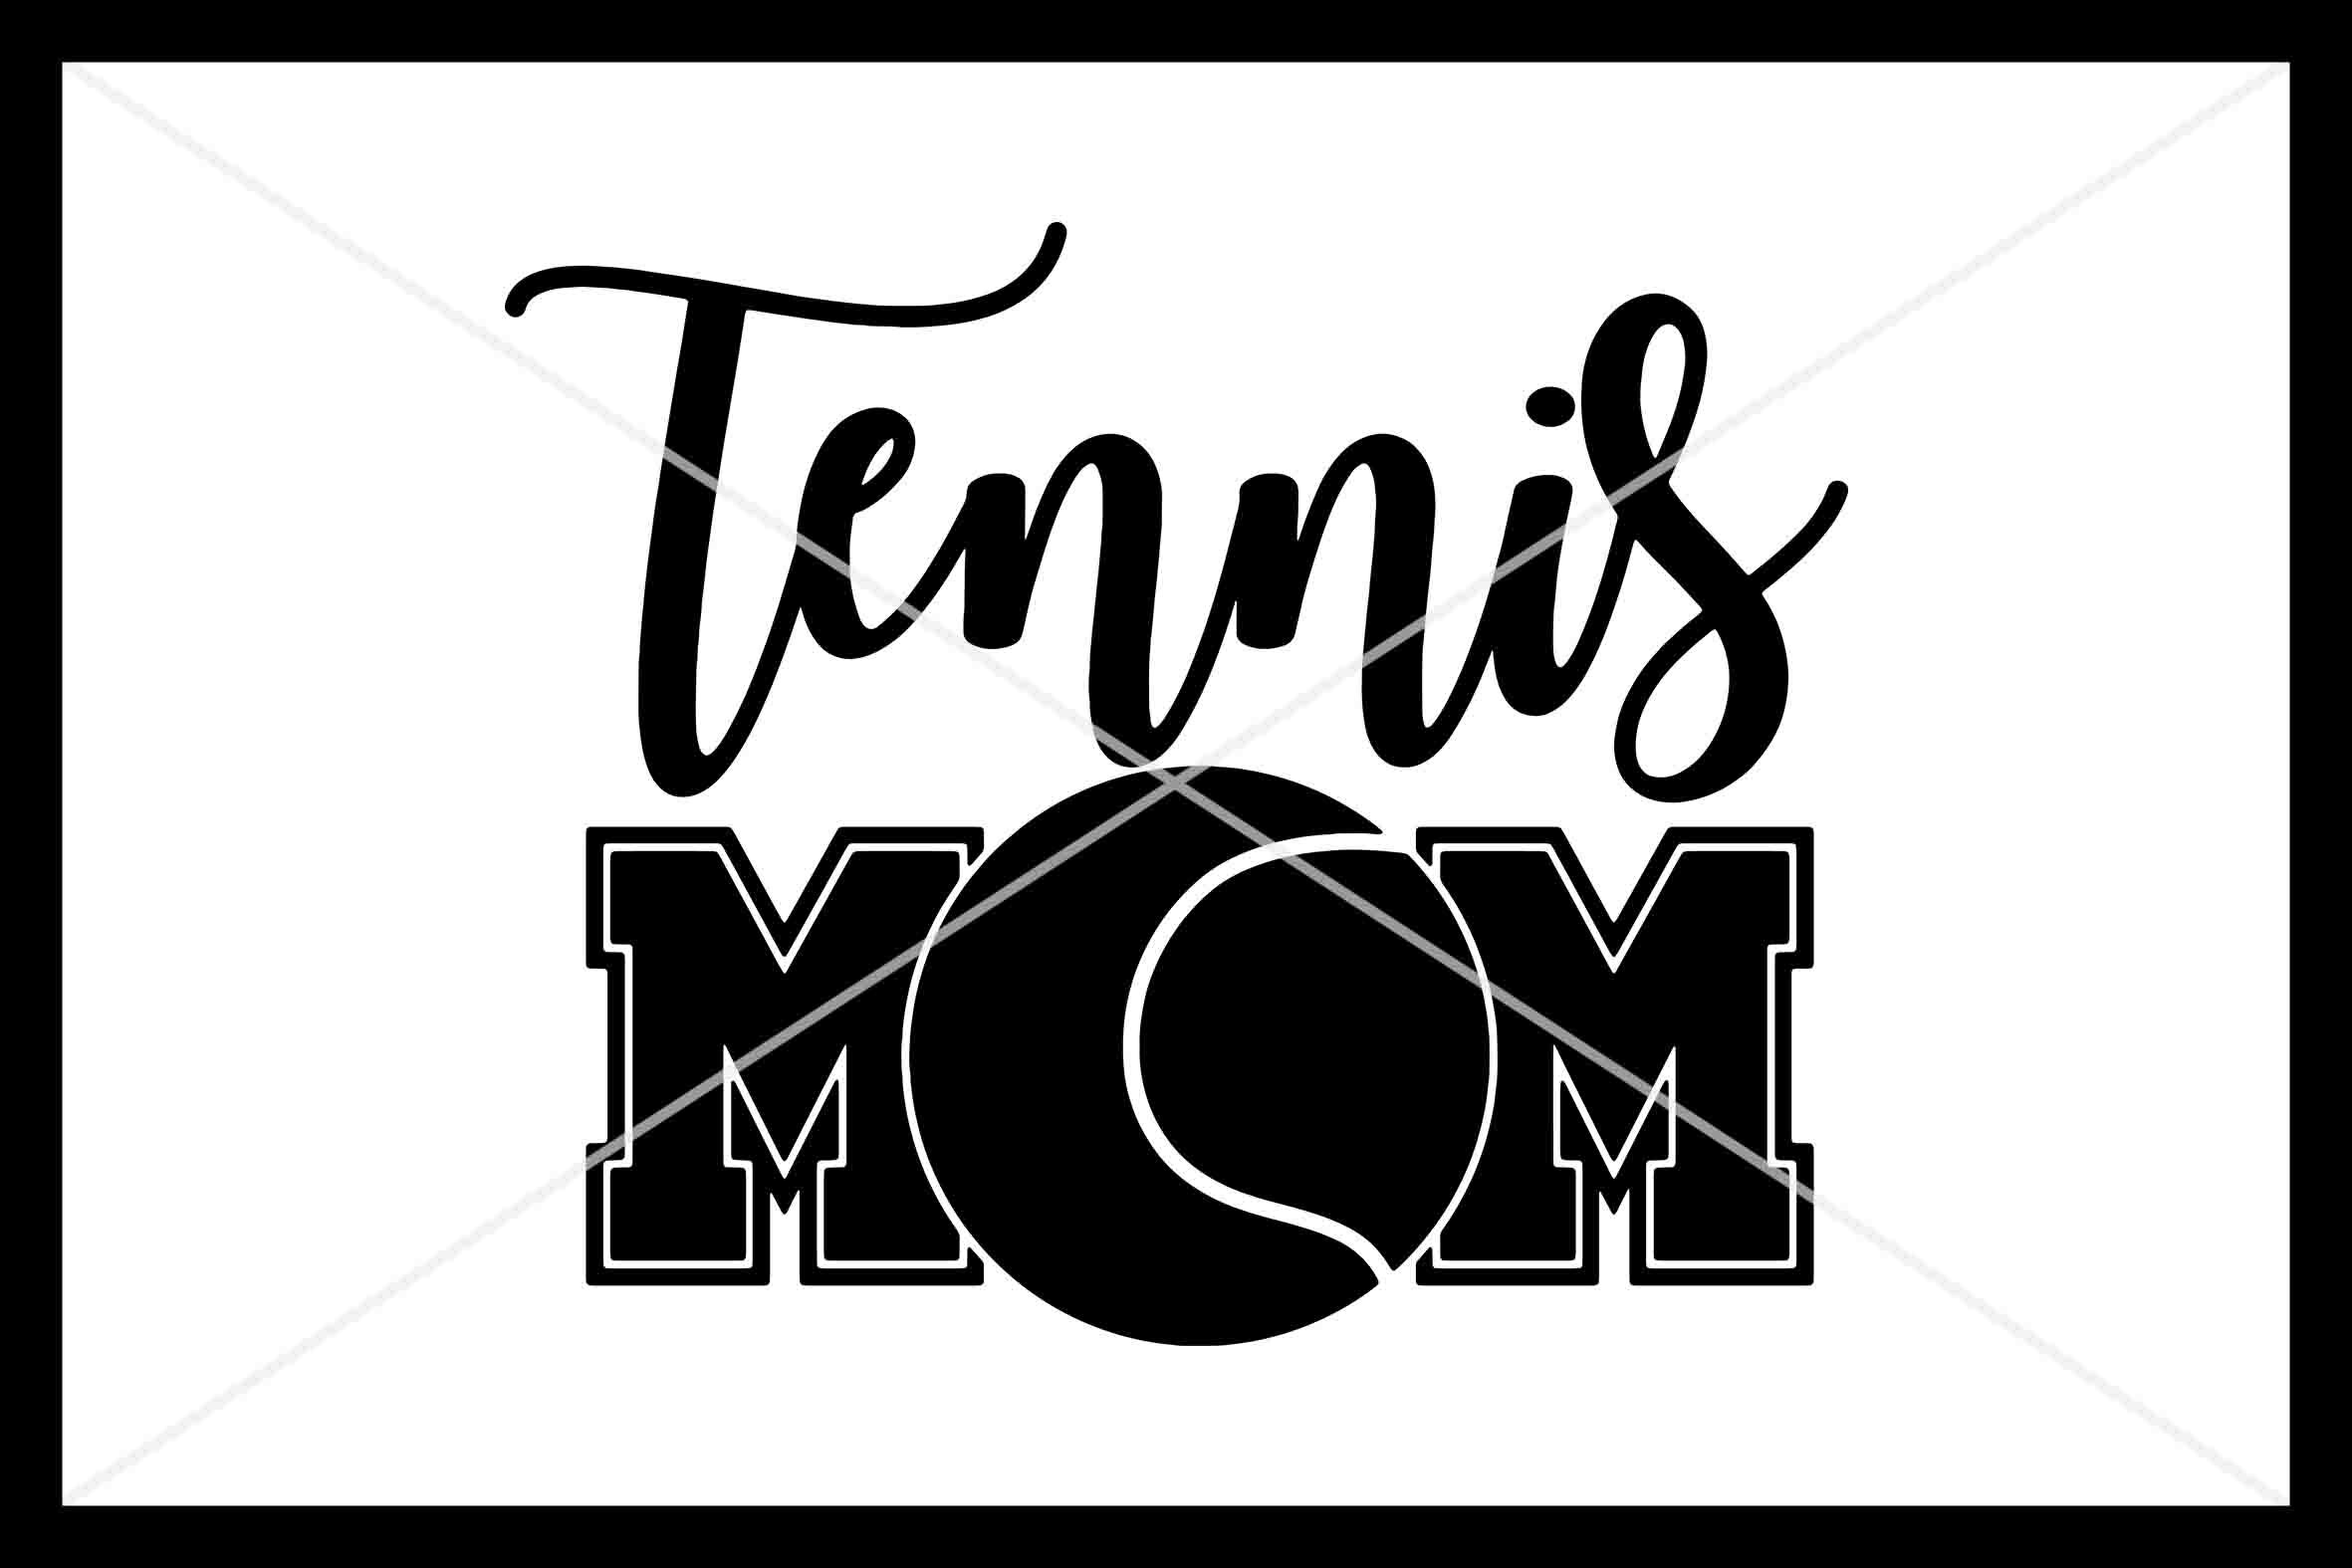 Tennis Mom Svg Instant Download Cut File By Design Time